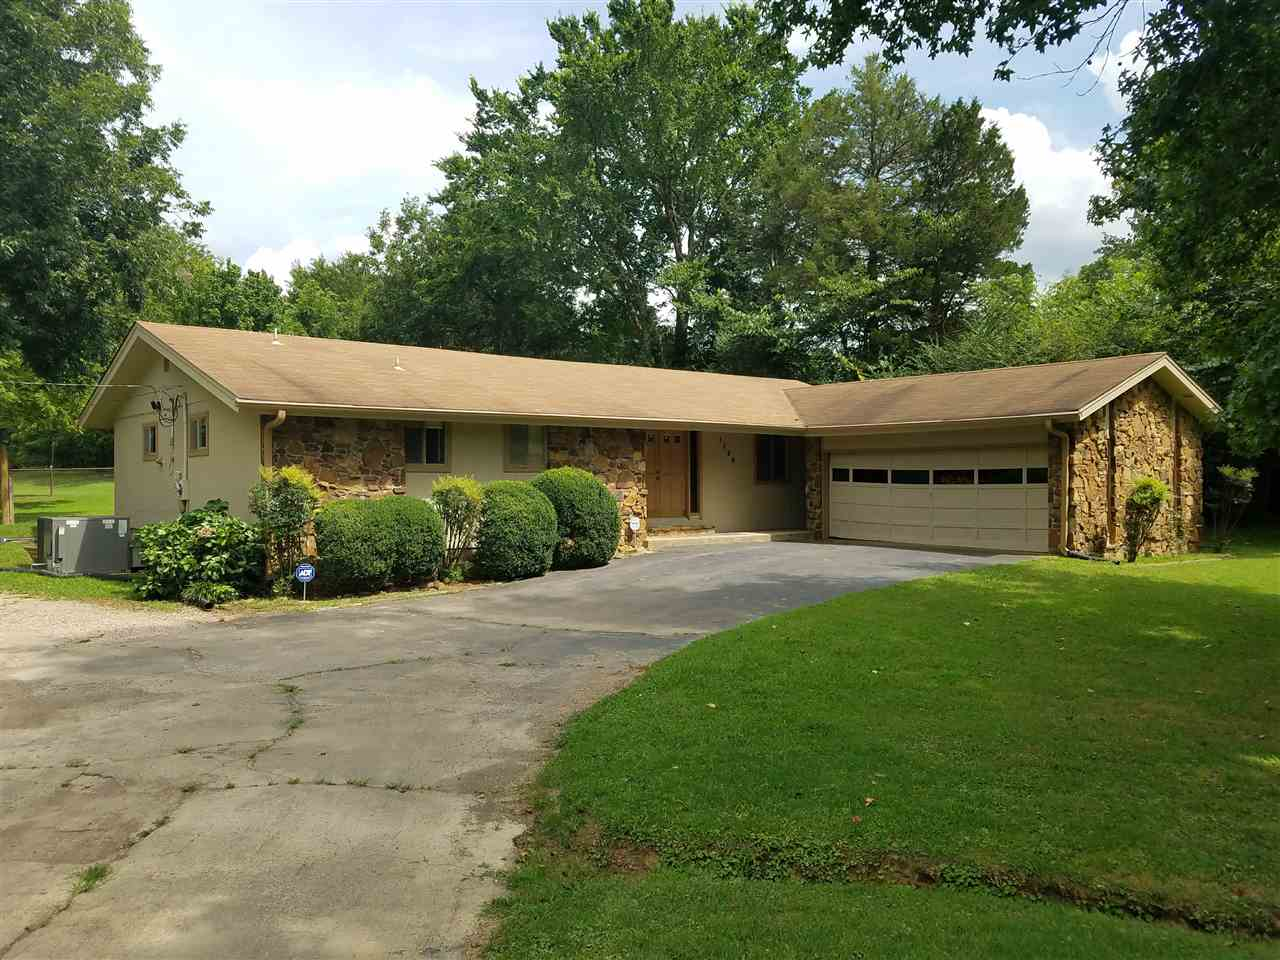 1138 N COLLIERVILLE-ARLINGTON RD, Unincorporated, TN 38017